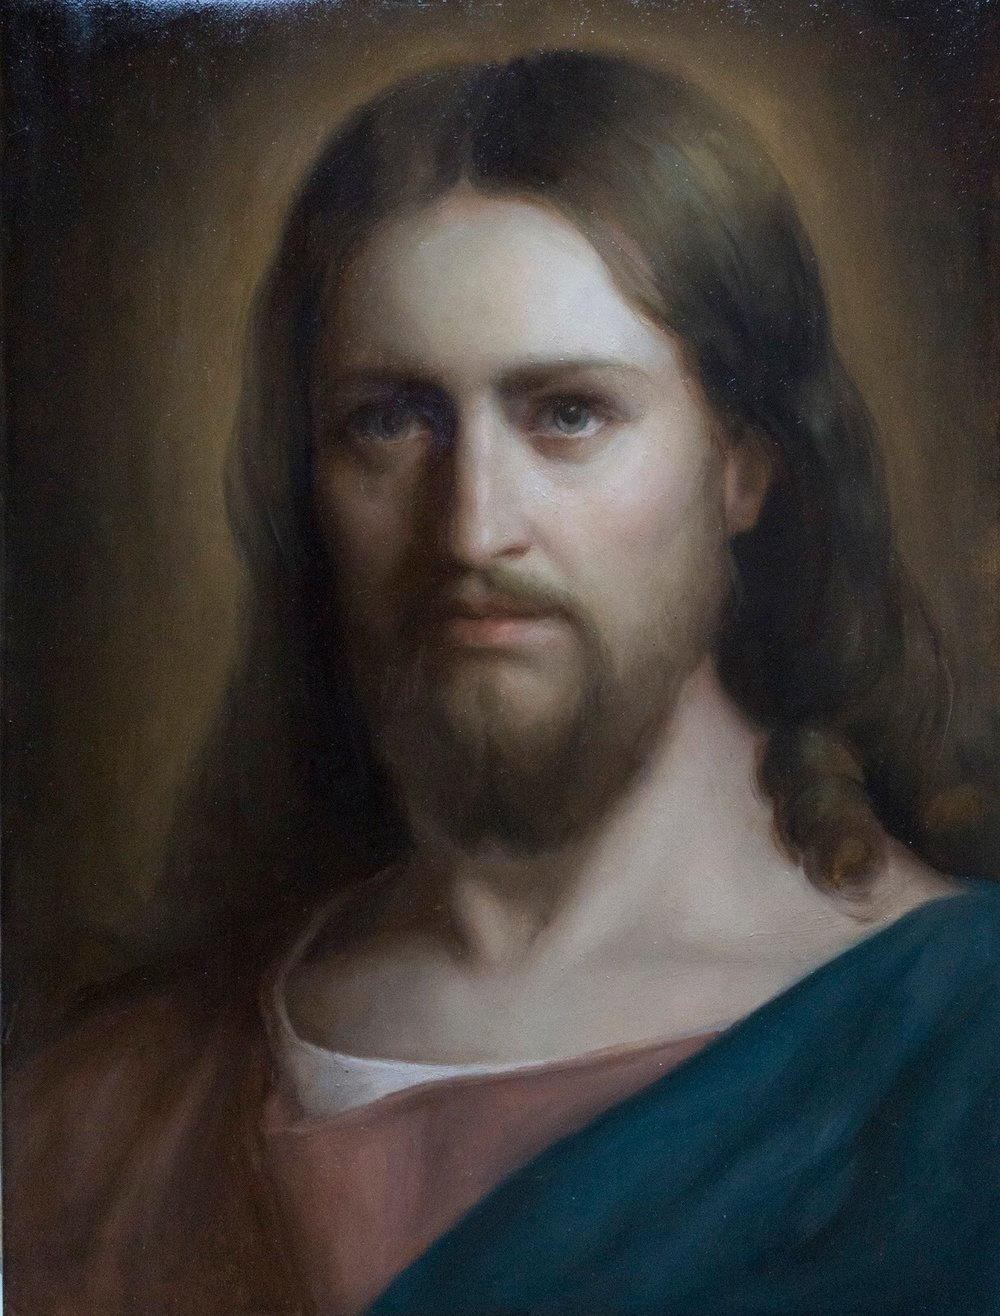 Portrait of Christ (2016) after Carl Bloch by Niki Covington. Oil on Linen. 12 x 18 in.